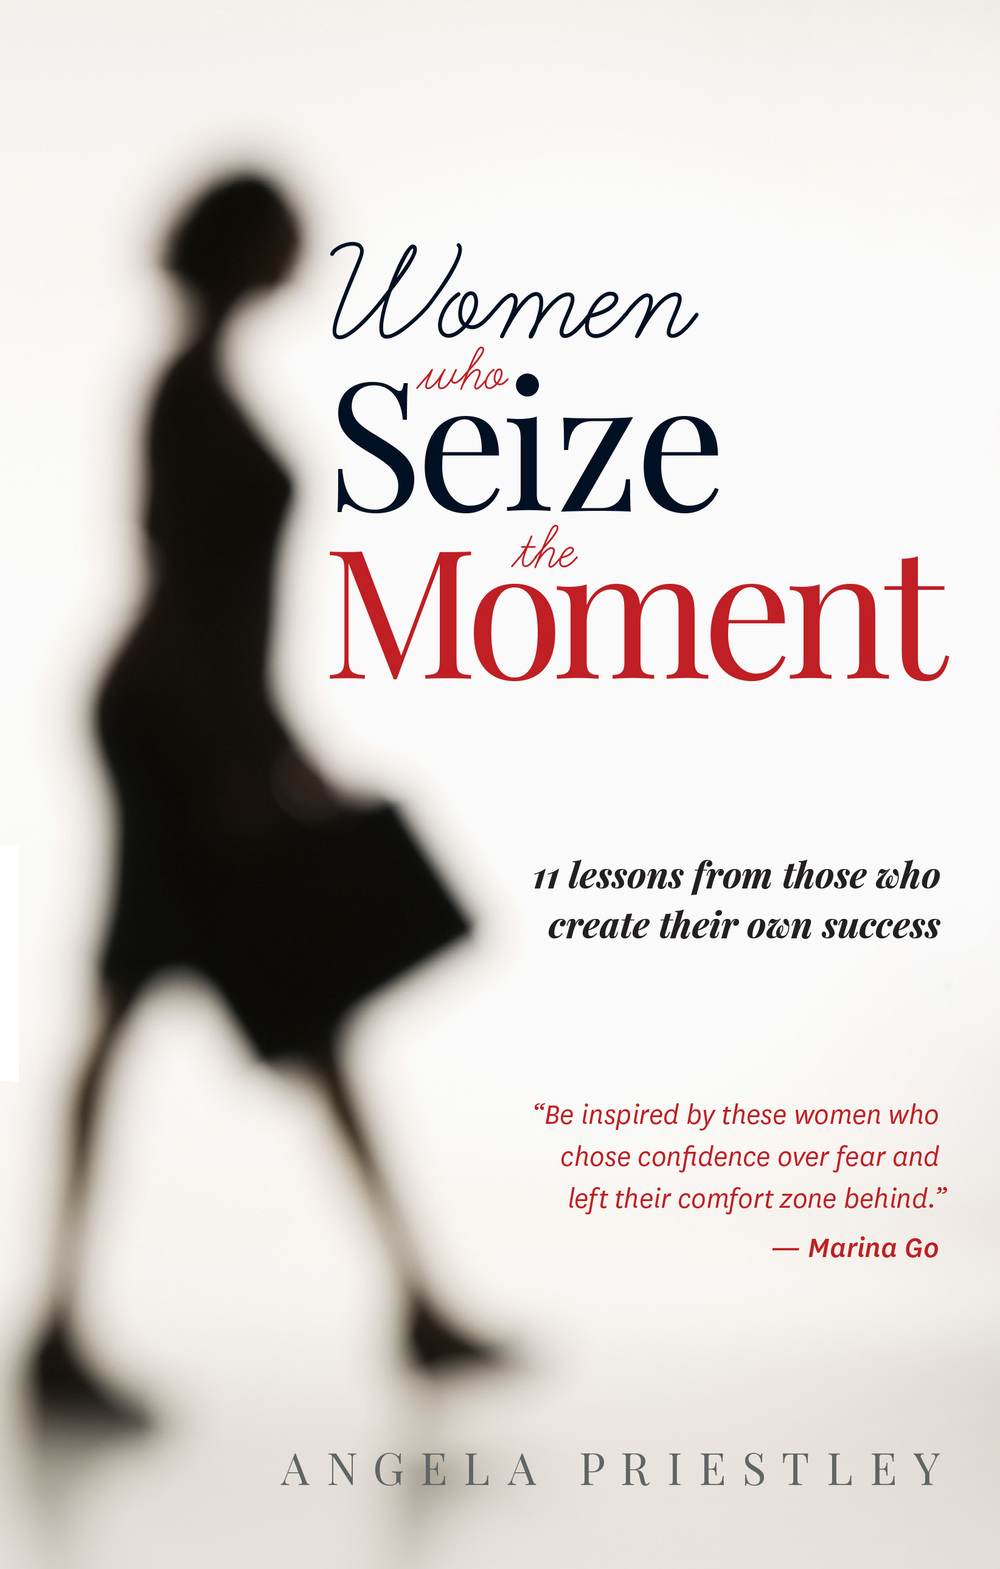 Women-who-seize-the-moment